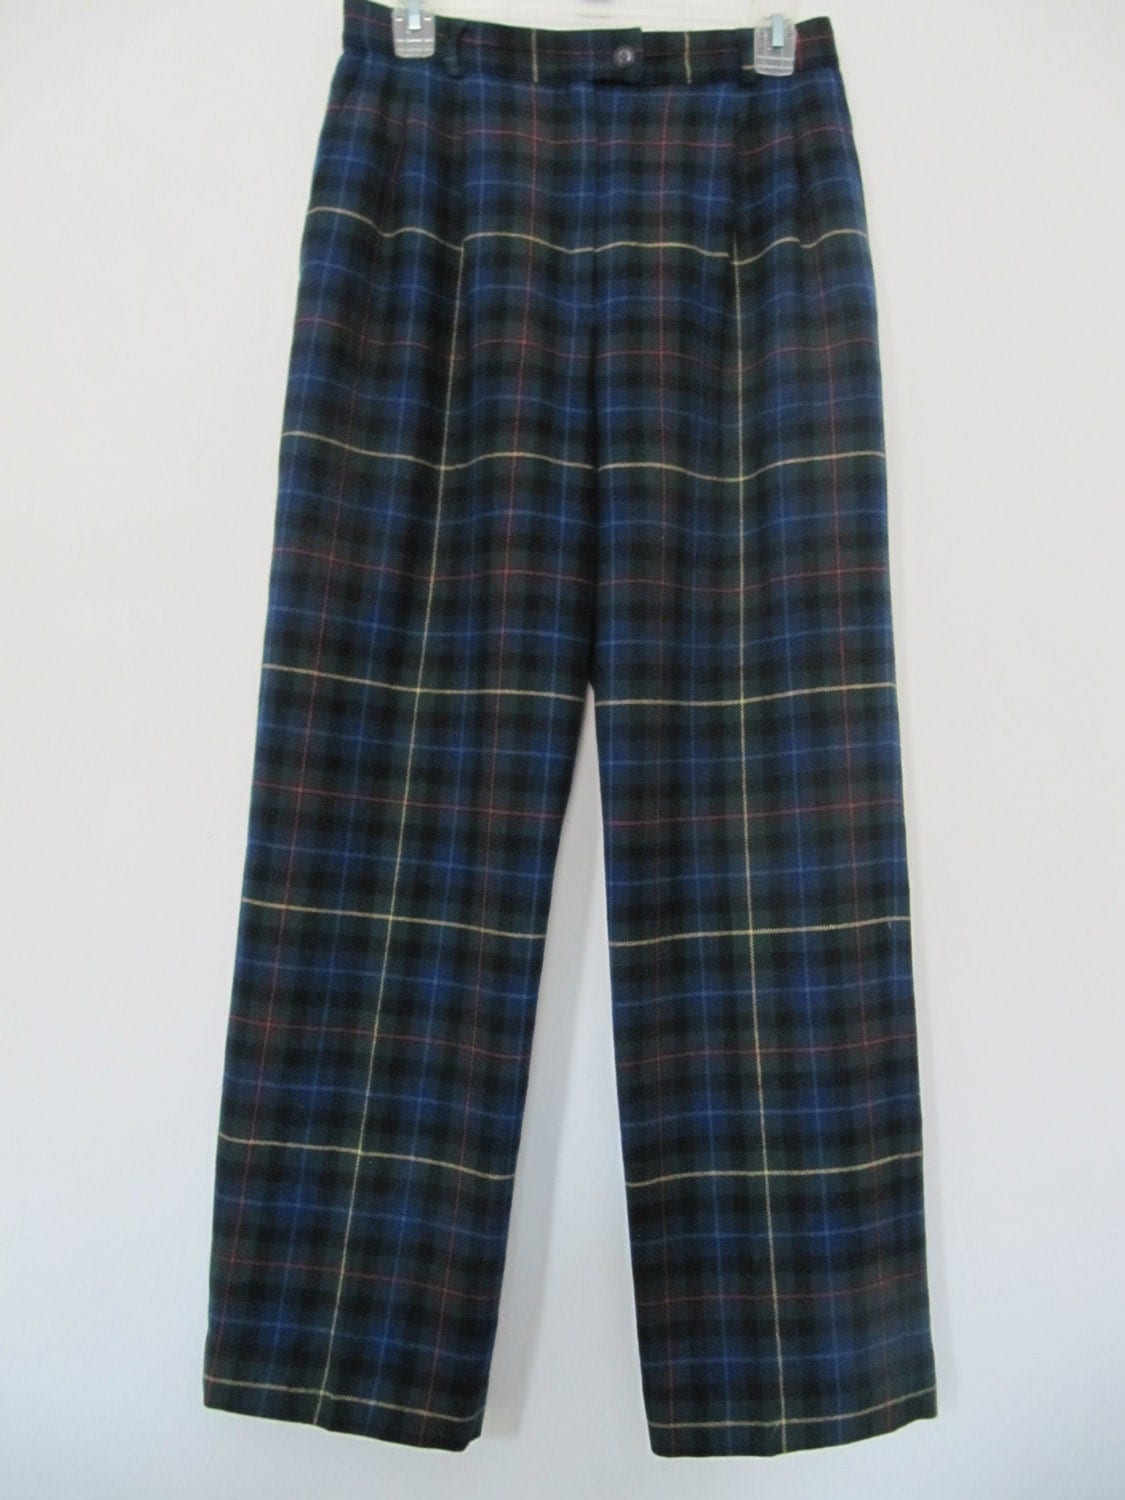 No-wrinkle women's wool pants from Pendleton keep you looking chic. Shop women's trousers & chinos now. Pendleton Plaid Woven in the USA Wear To Work Seasonless Wool Tommy Bahama & Pendleton Women's Pants. Women Women's Clothing Pants.